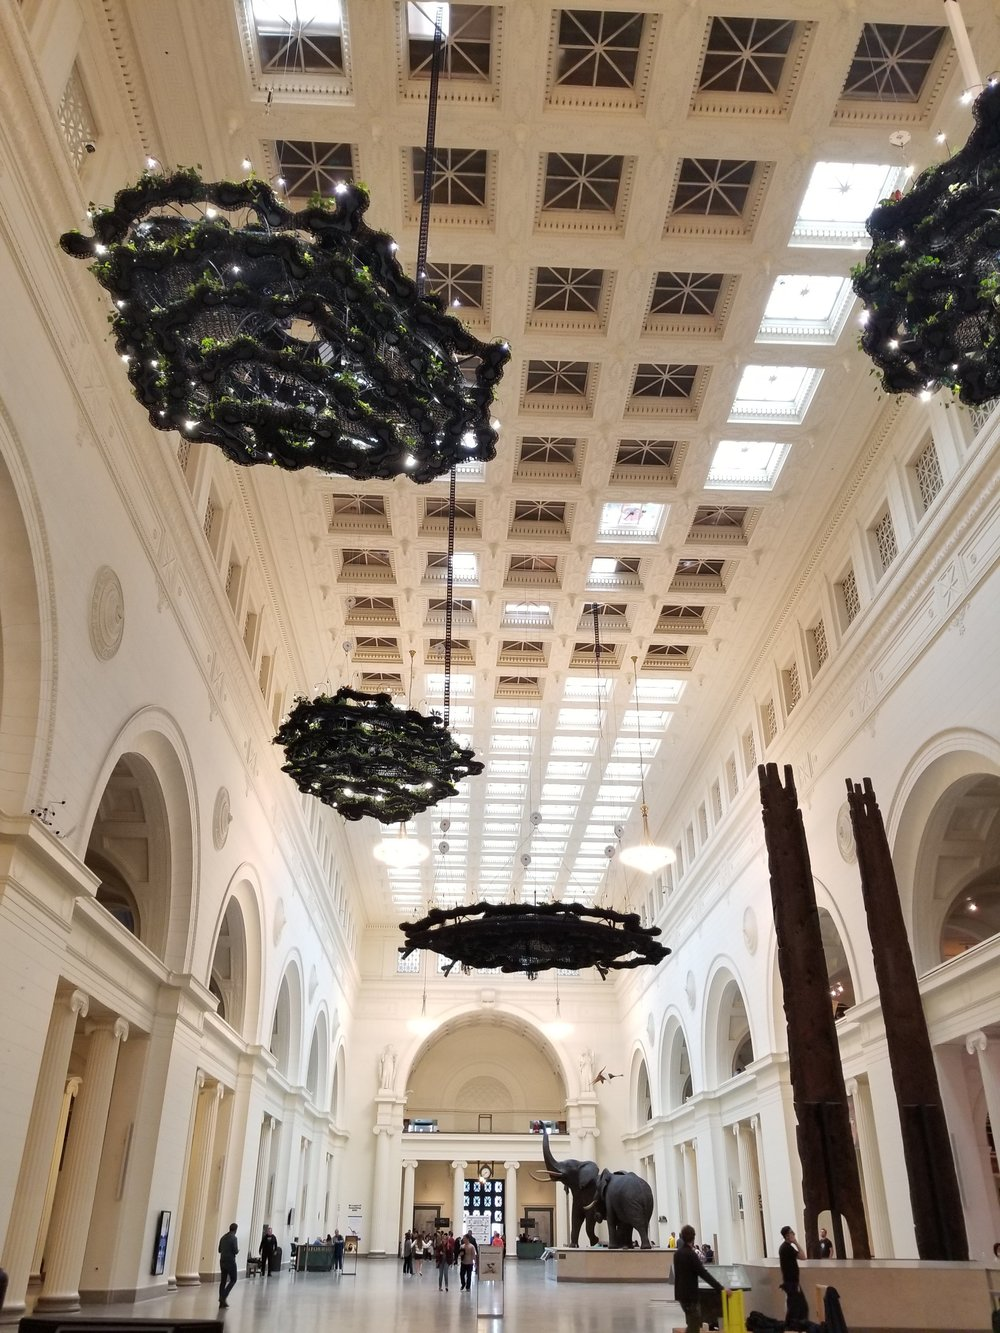 The Field Museum had these incredible living plant chandeliers!